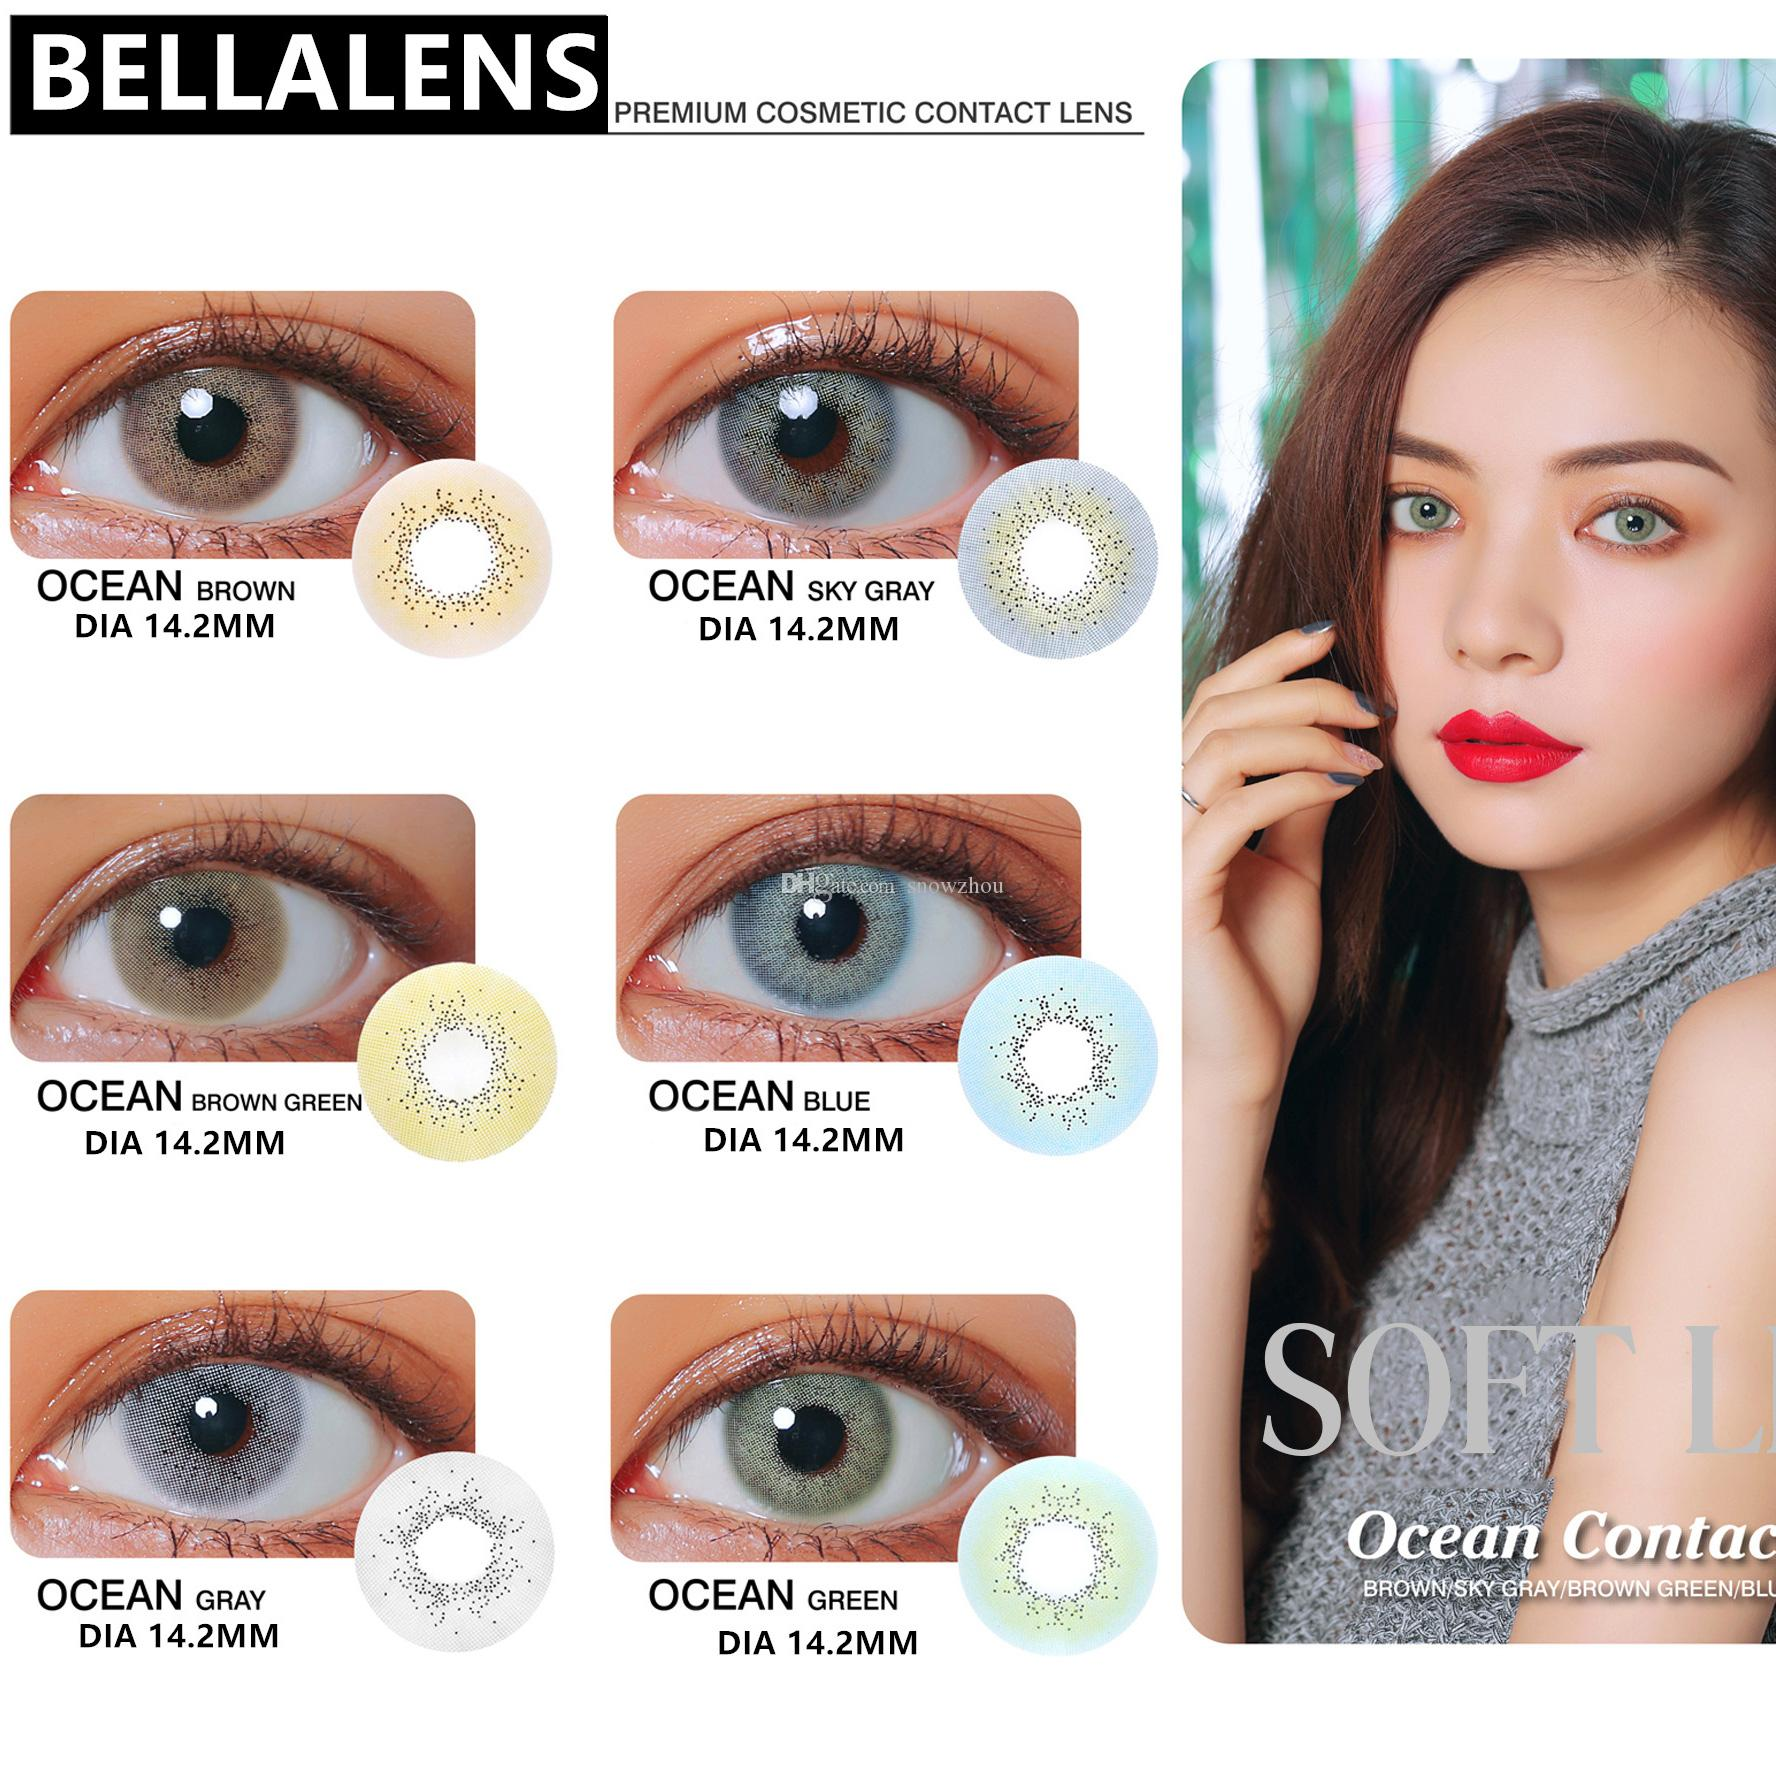 color contact lenses dhl shipping recognized comsmetic contact lenses color contact lenses online with 5 95 pair on snowzhou s store dhgate com